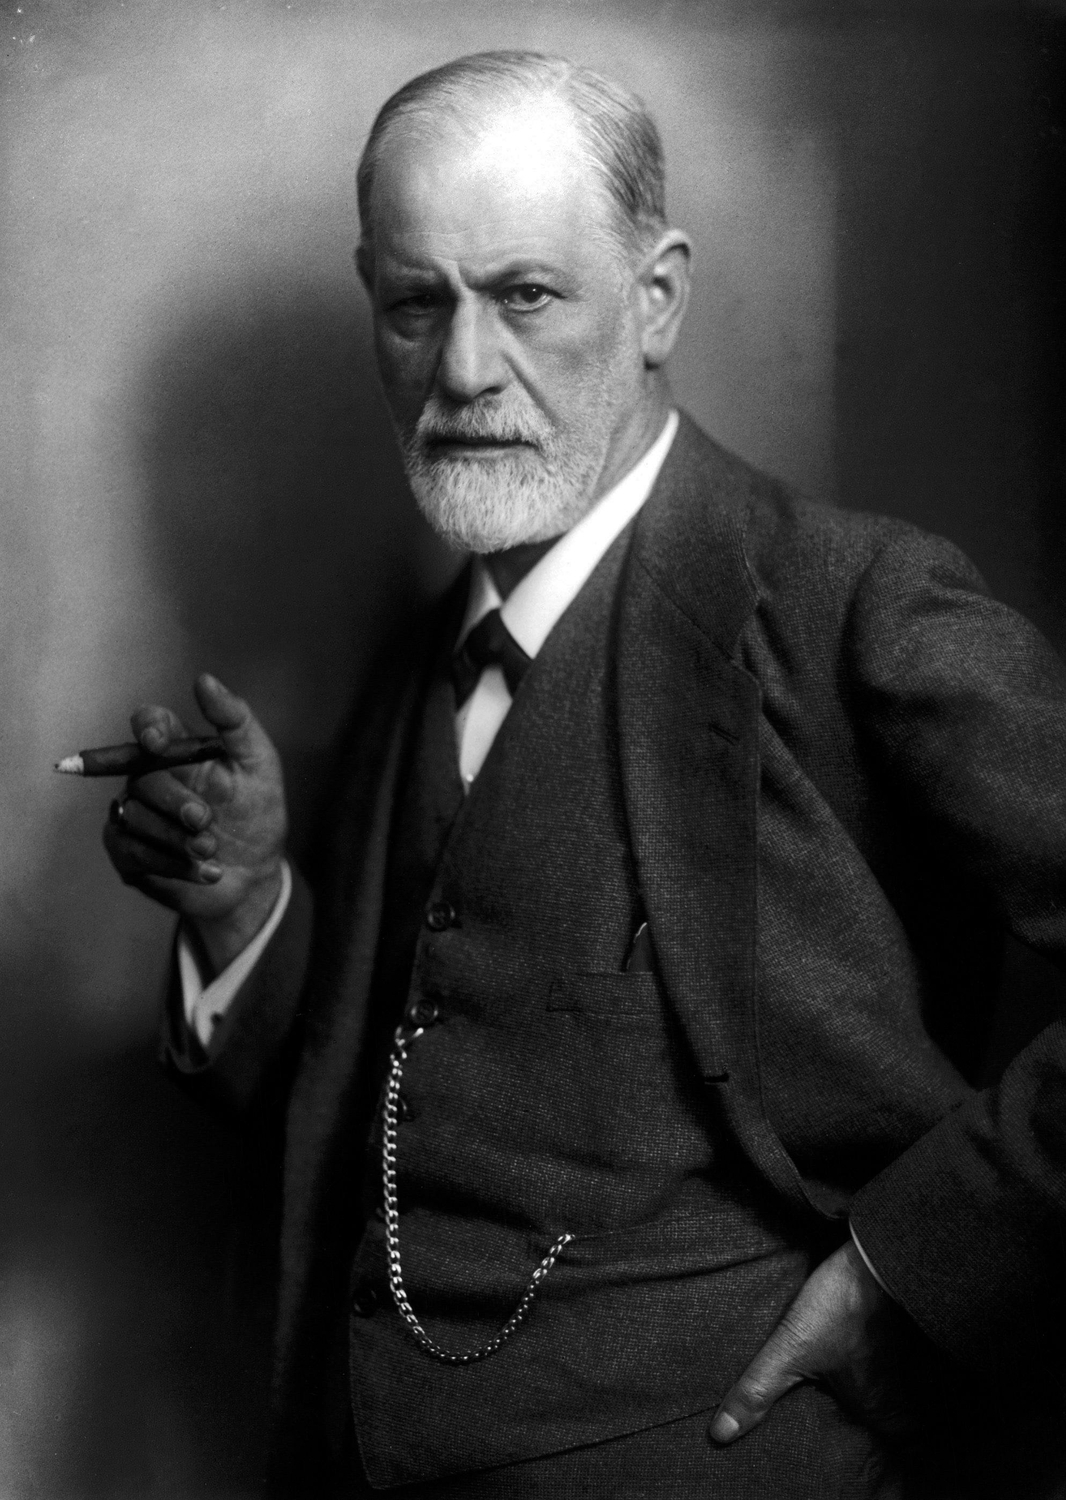 Sigmund Freud - The Father of Psychoanalysis